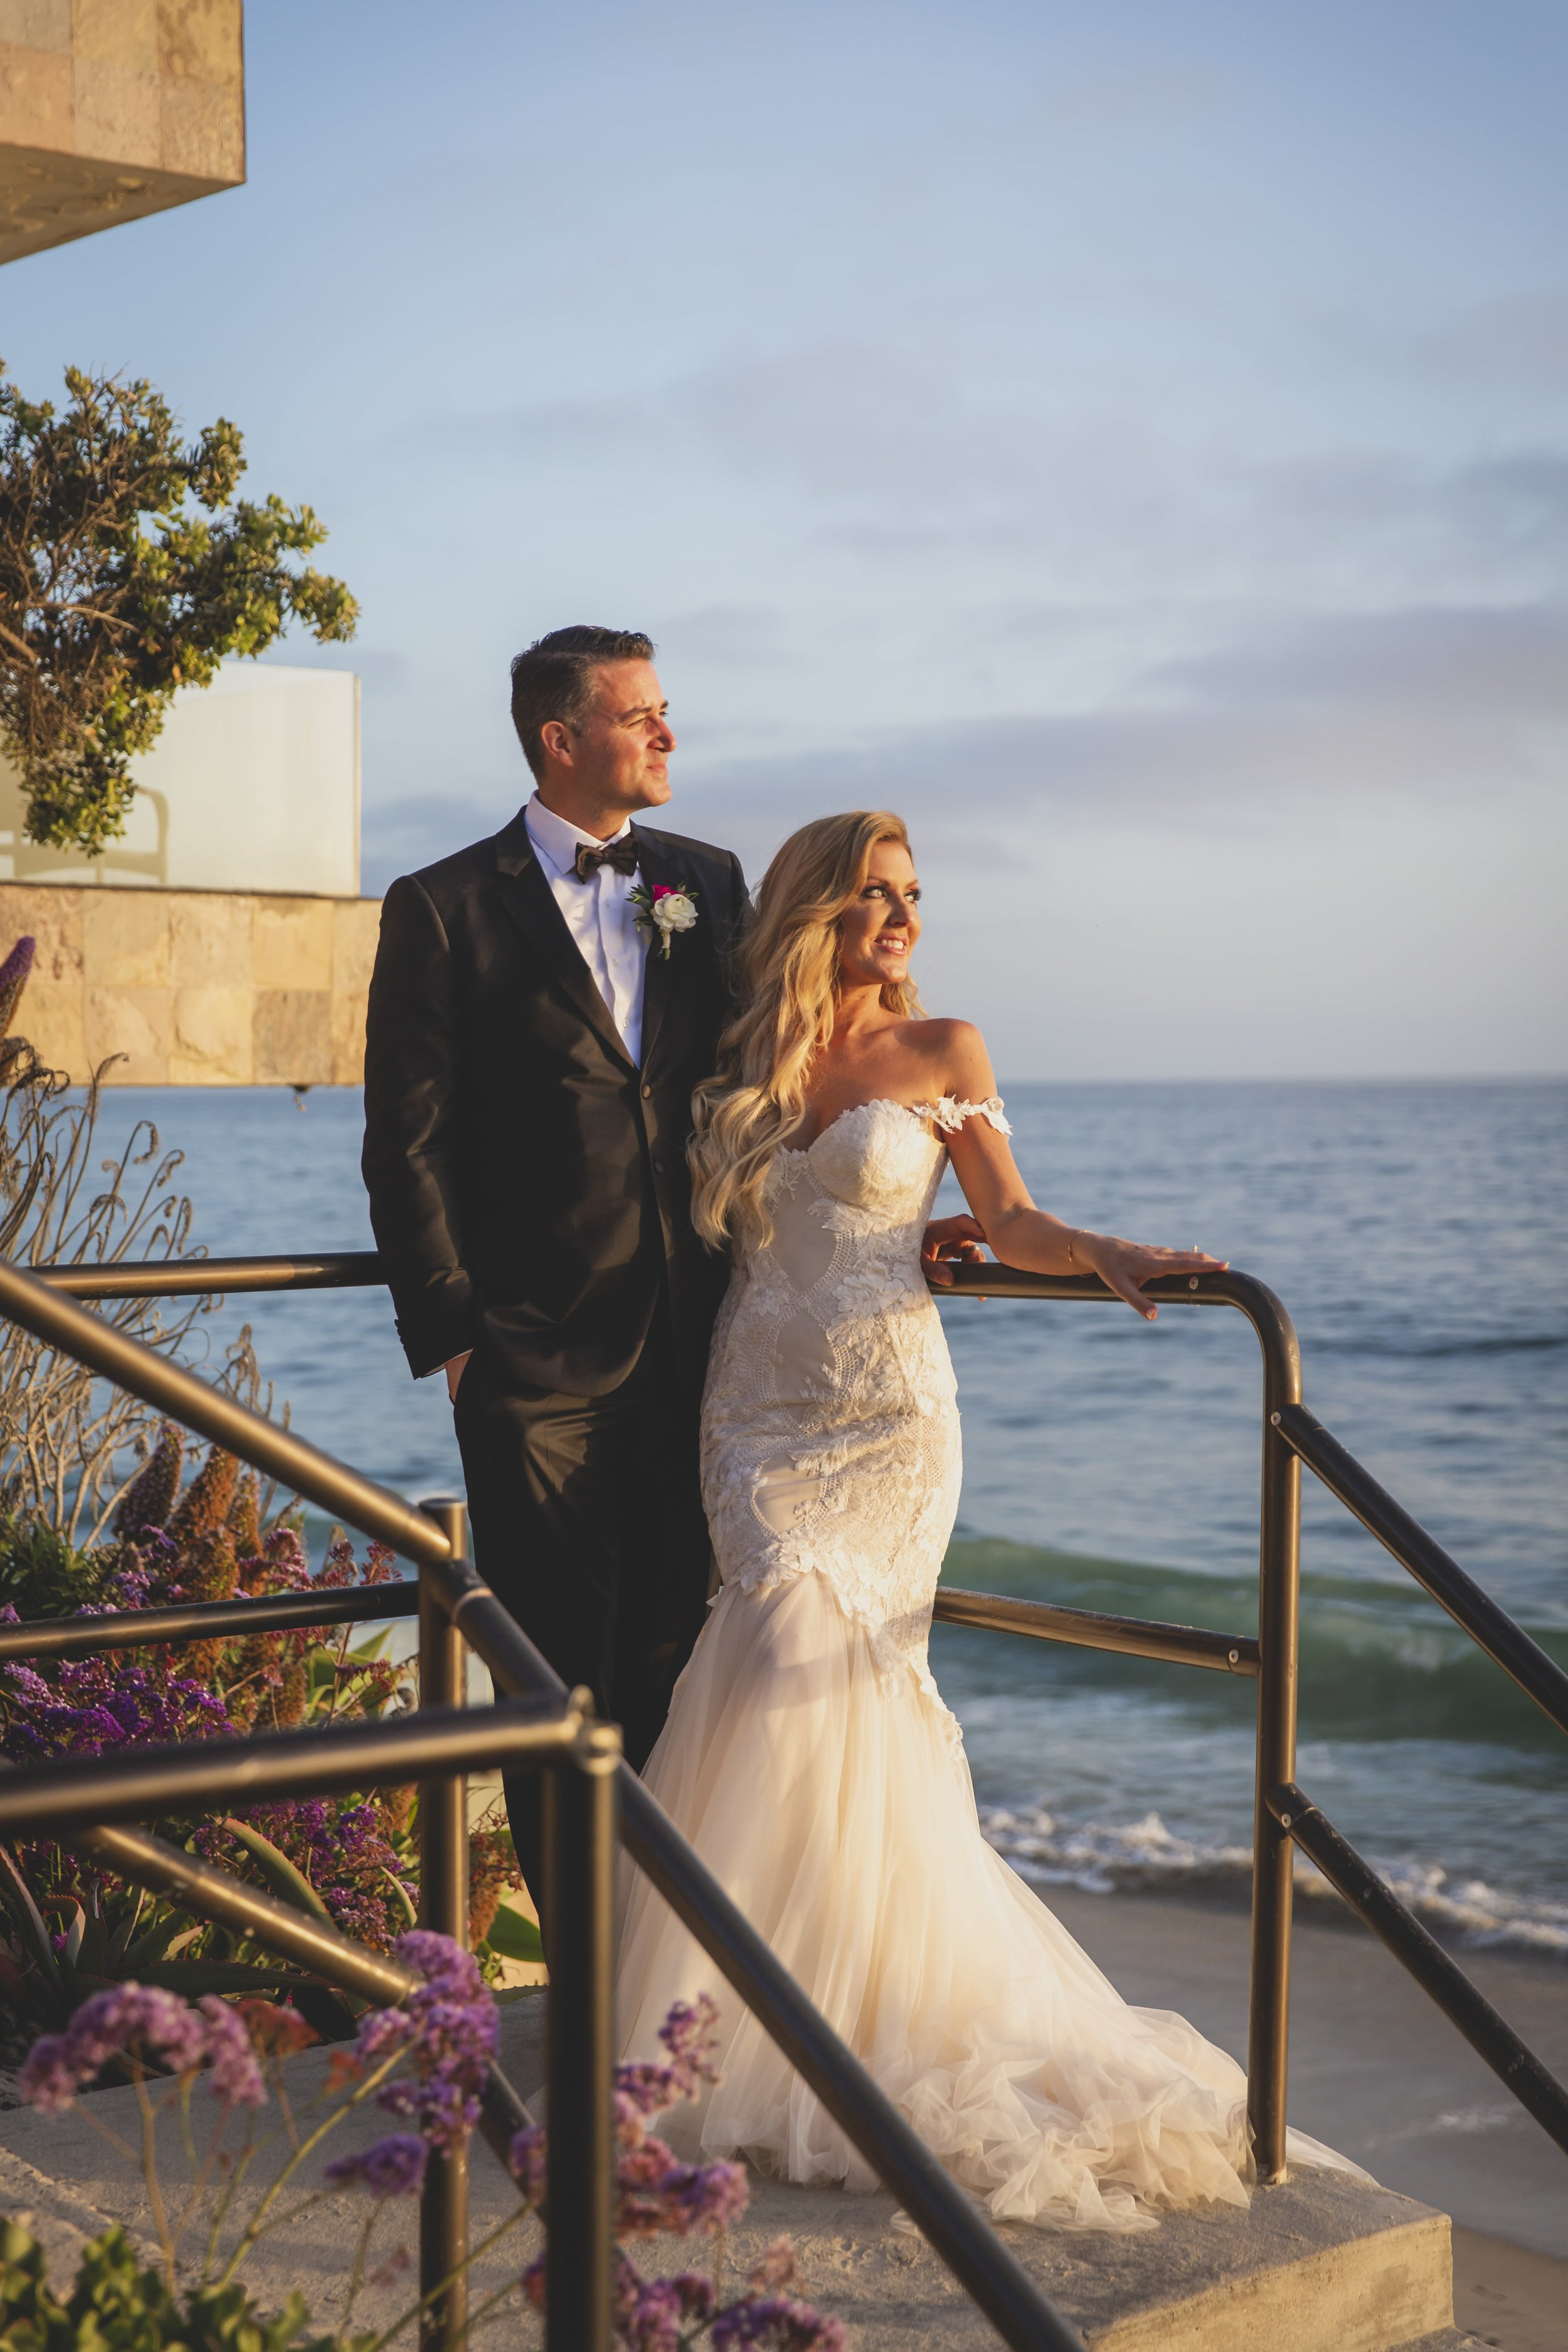 Wedding Photography Packages - Heritage Park, Dana Point, CA - Bride and groom standing at the top of a set of stairs, staring into the ocean as the sun begins to set.